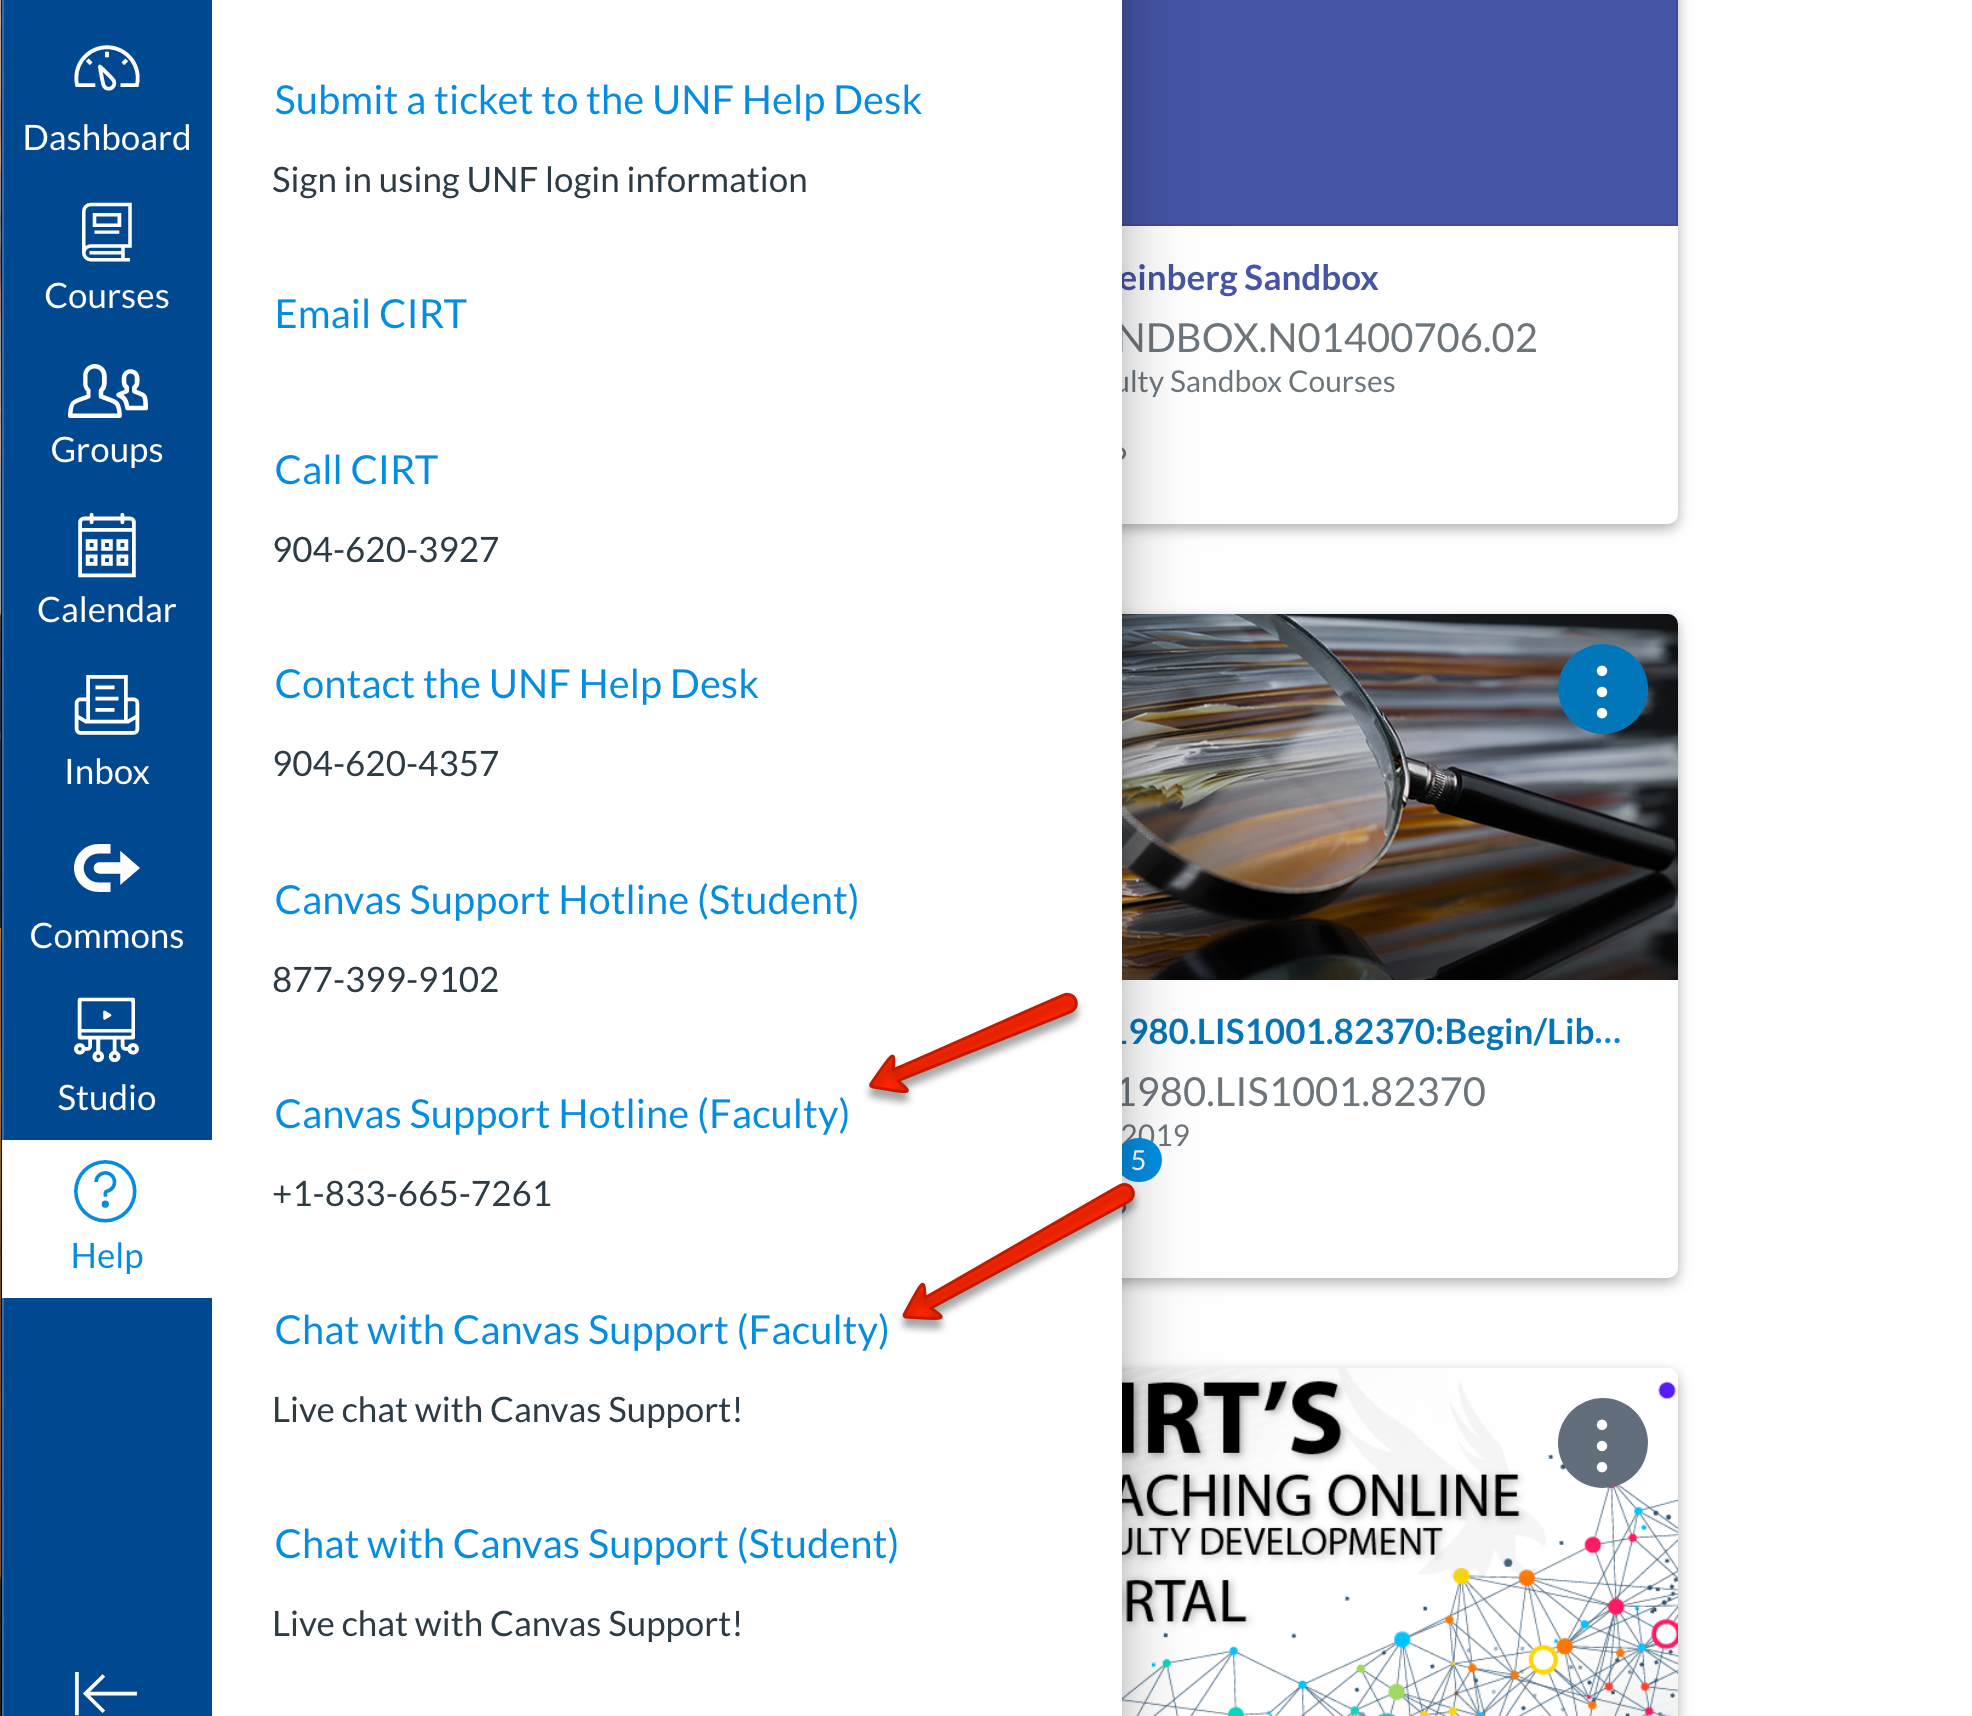 Image of Canvas menu with Canvas support links highlighted.